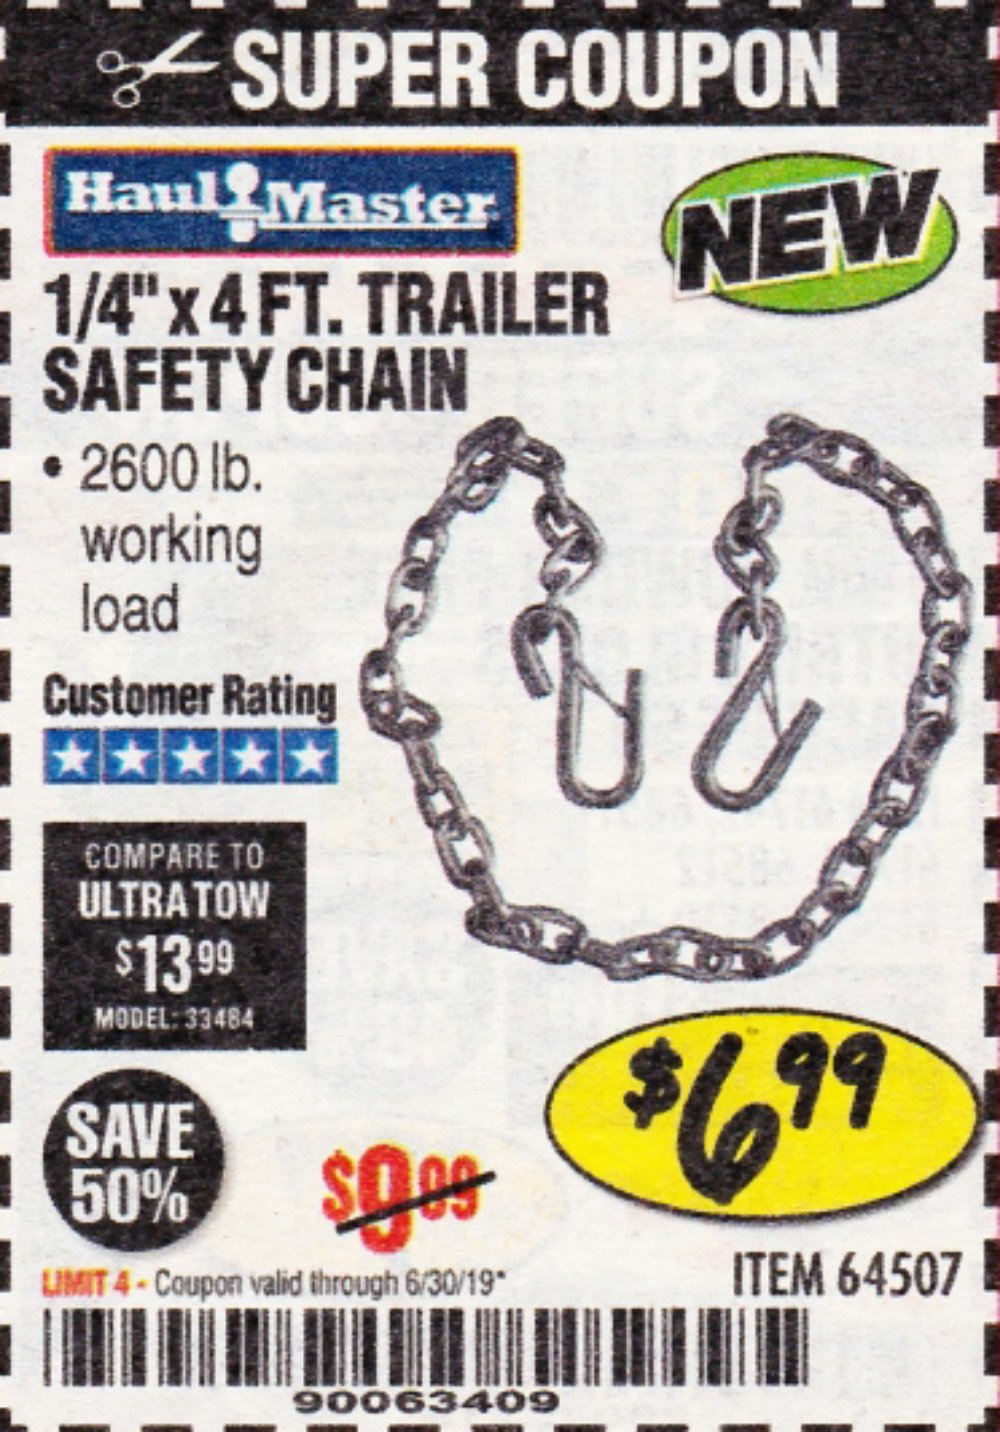 Harbor Freight Coupon, HF Coupons - 1/4